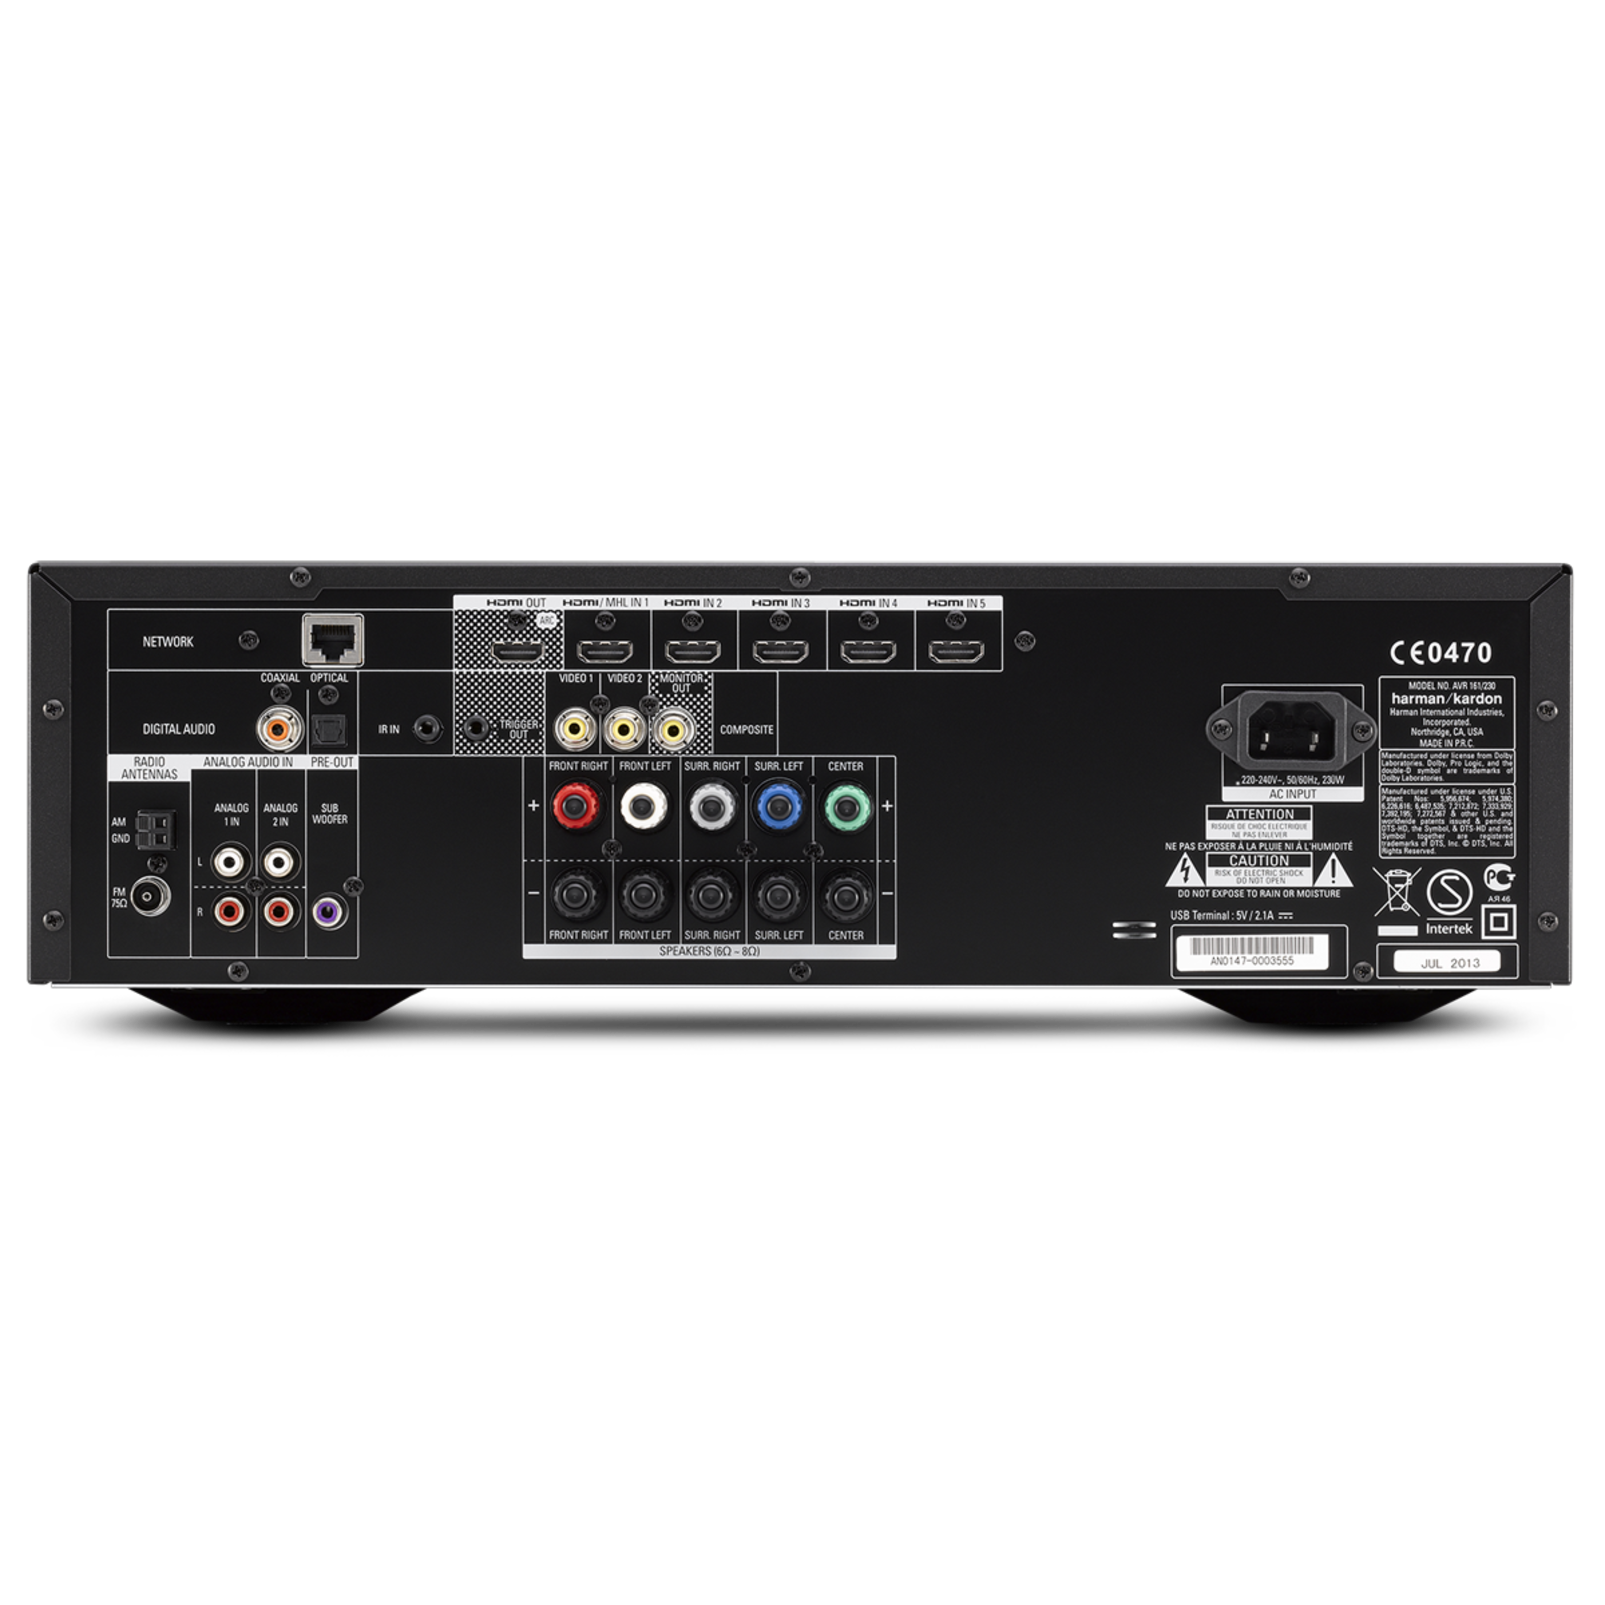 AVR 161 - Black - 425-watt, 5.1-channel, networked AVR with Bluetooth connectivity - Back